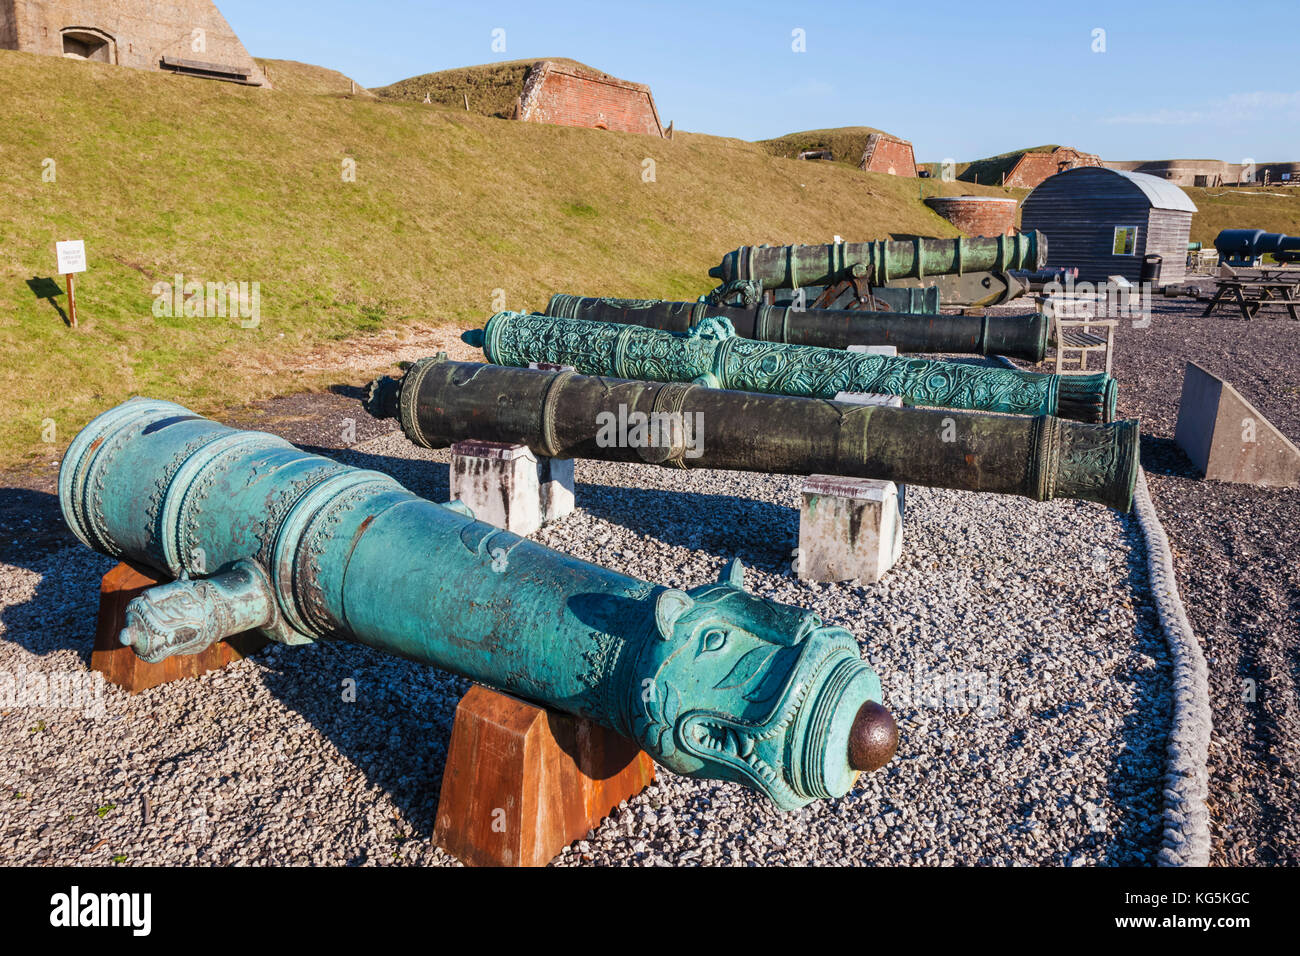 England, Hampshire, Portsmouth, The Royal Amouries Military Museum Fort Nelson, Display of Asian Guns - Stock Image